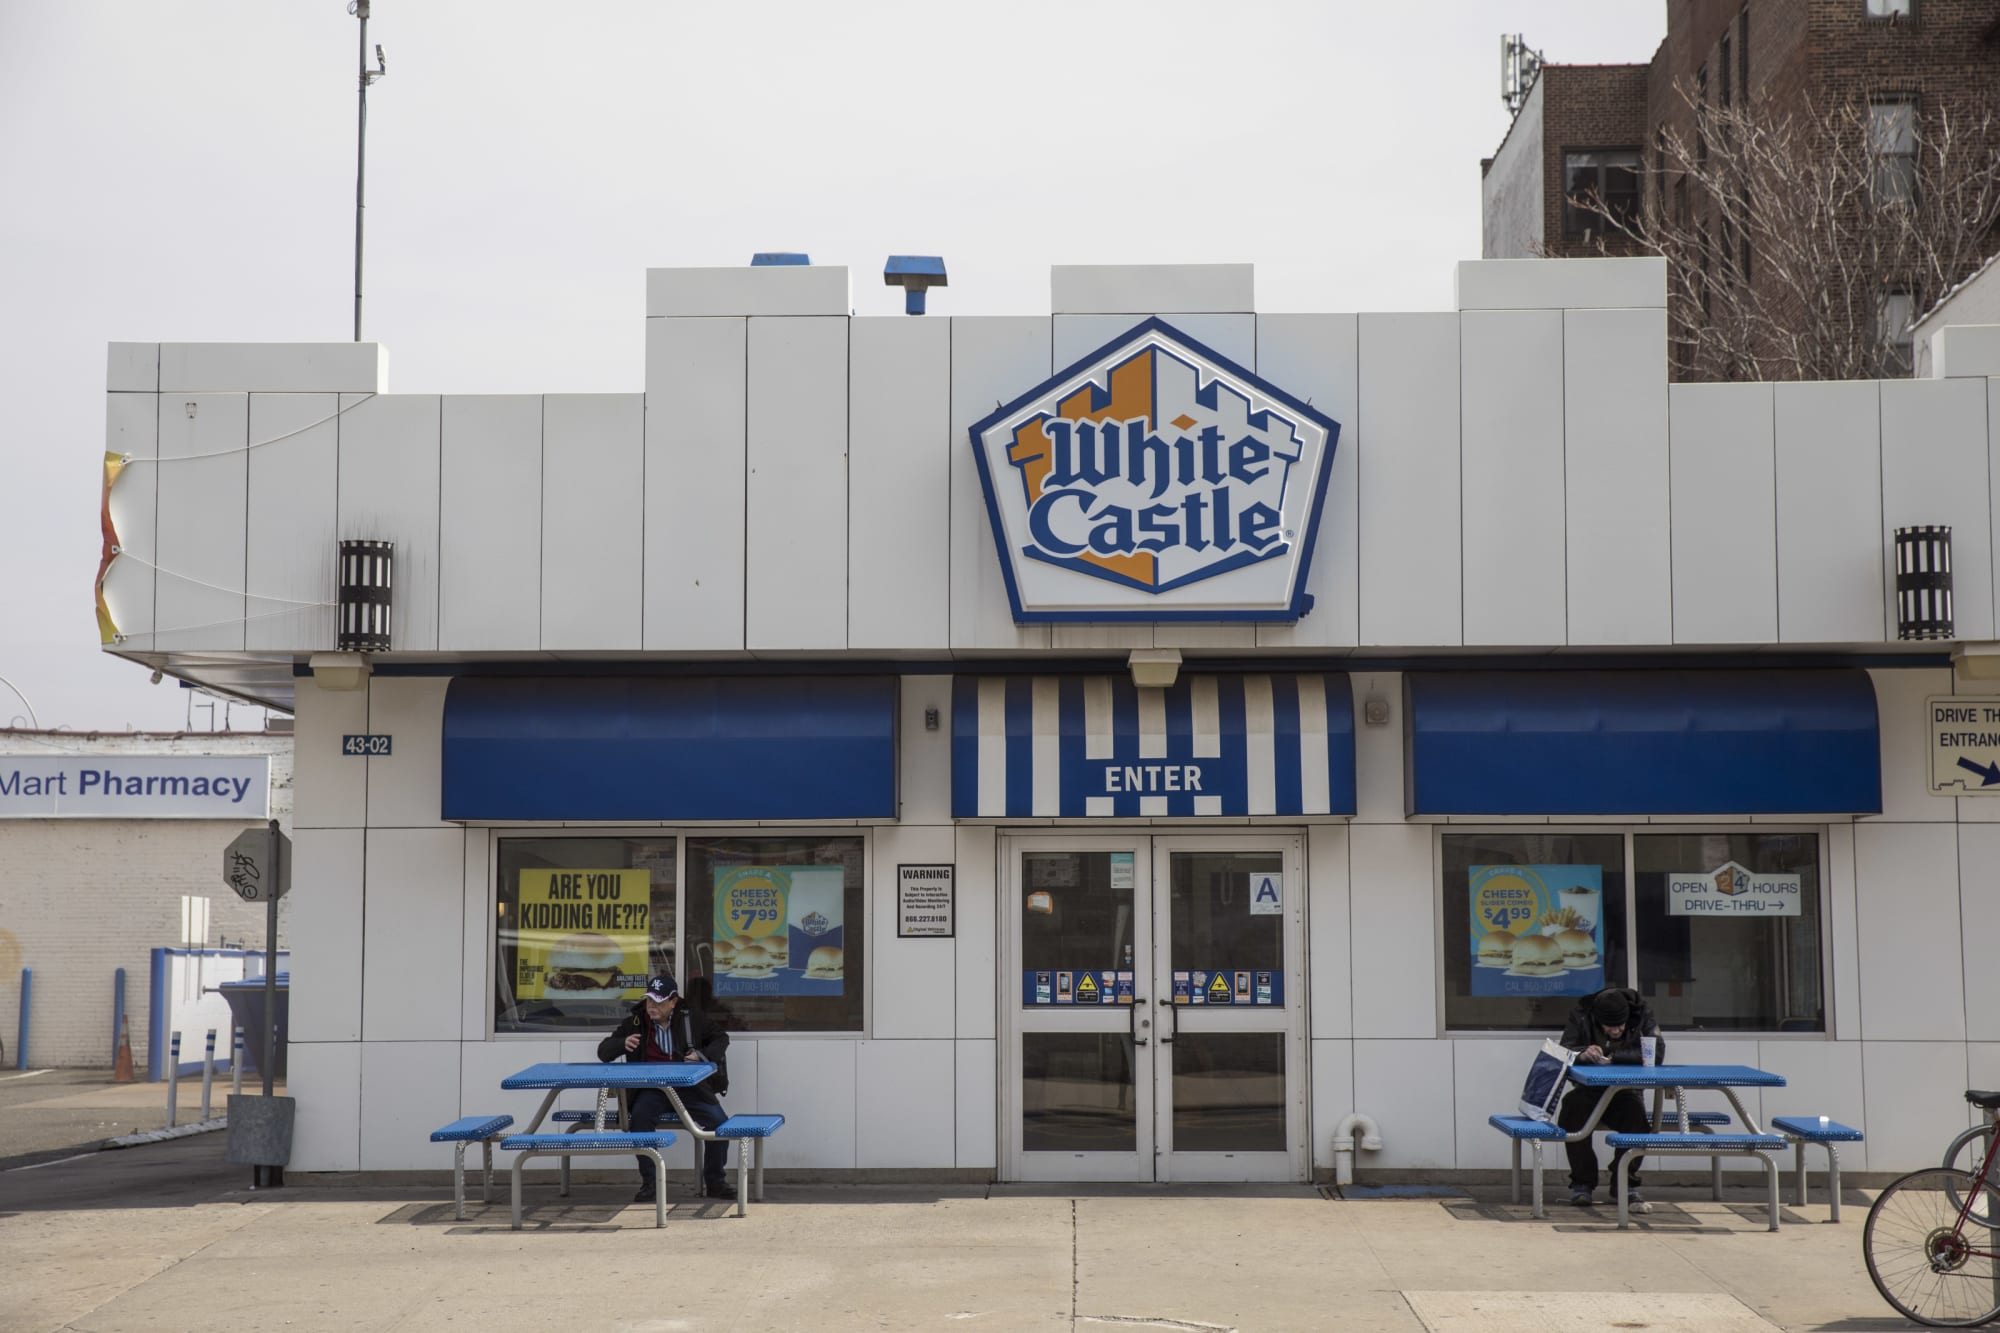 White Castle offers free combo meal for joining rewards program